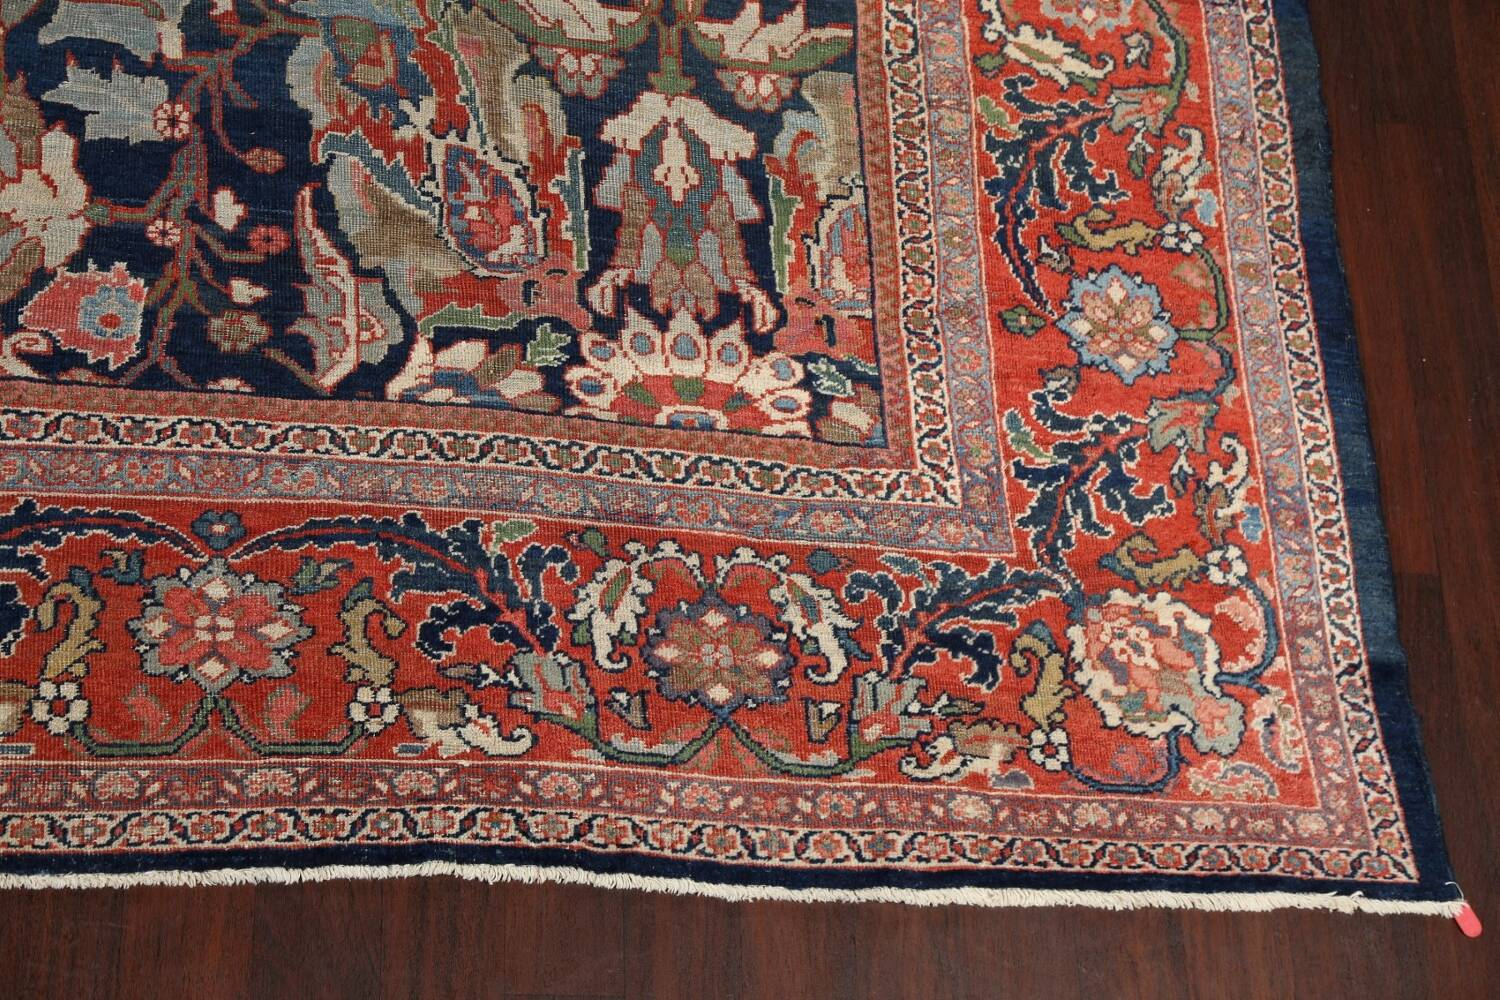 Pre-1900 Antique Vegetable Dye Sultanabad Persian Rug 12x16 image 6